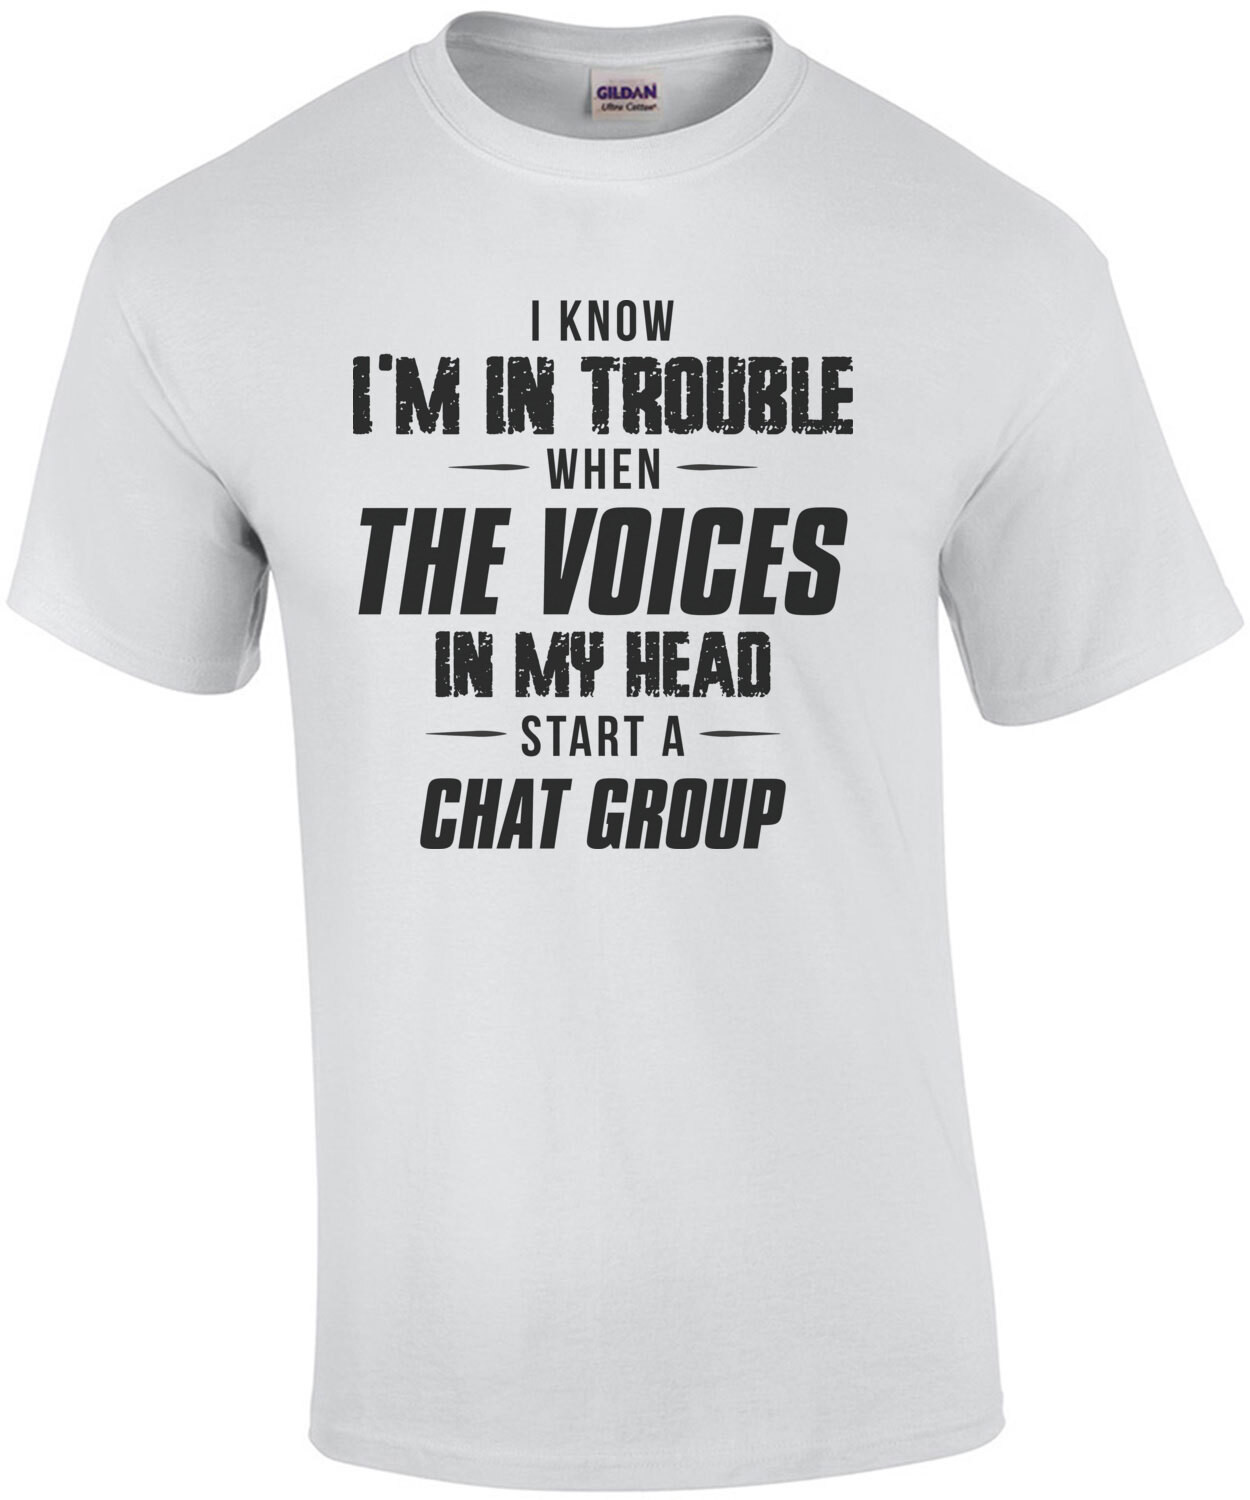 I know I'm in trouble when the voices in my head start a chat group - funny t-shirt